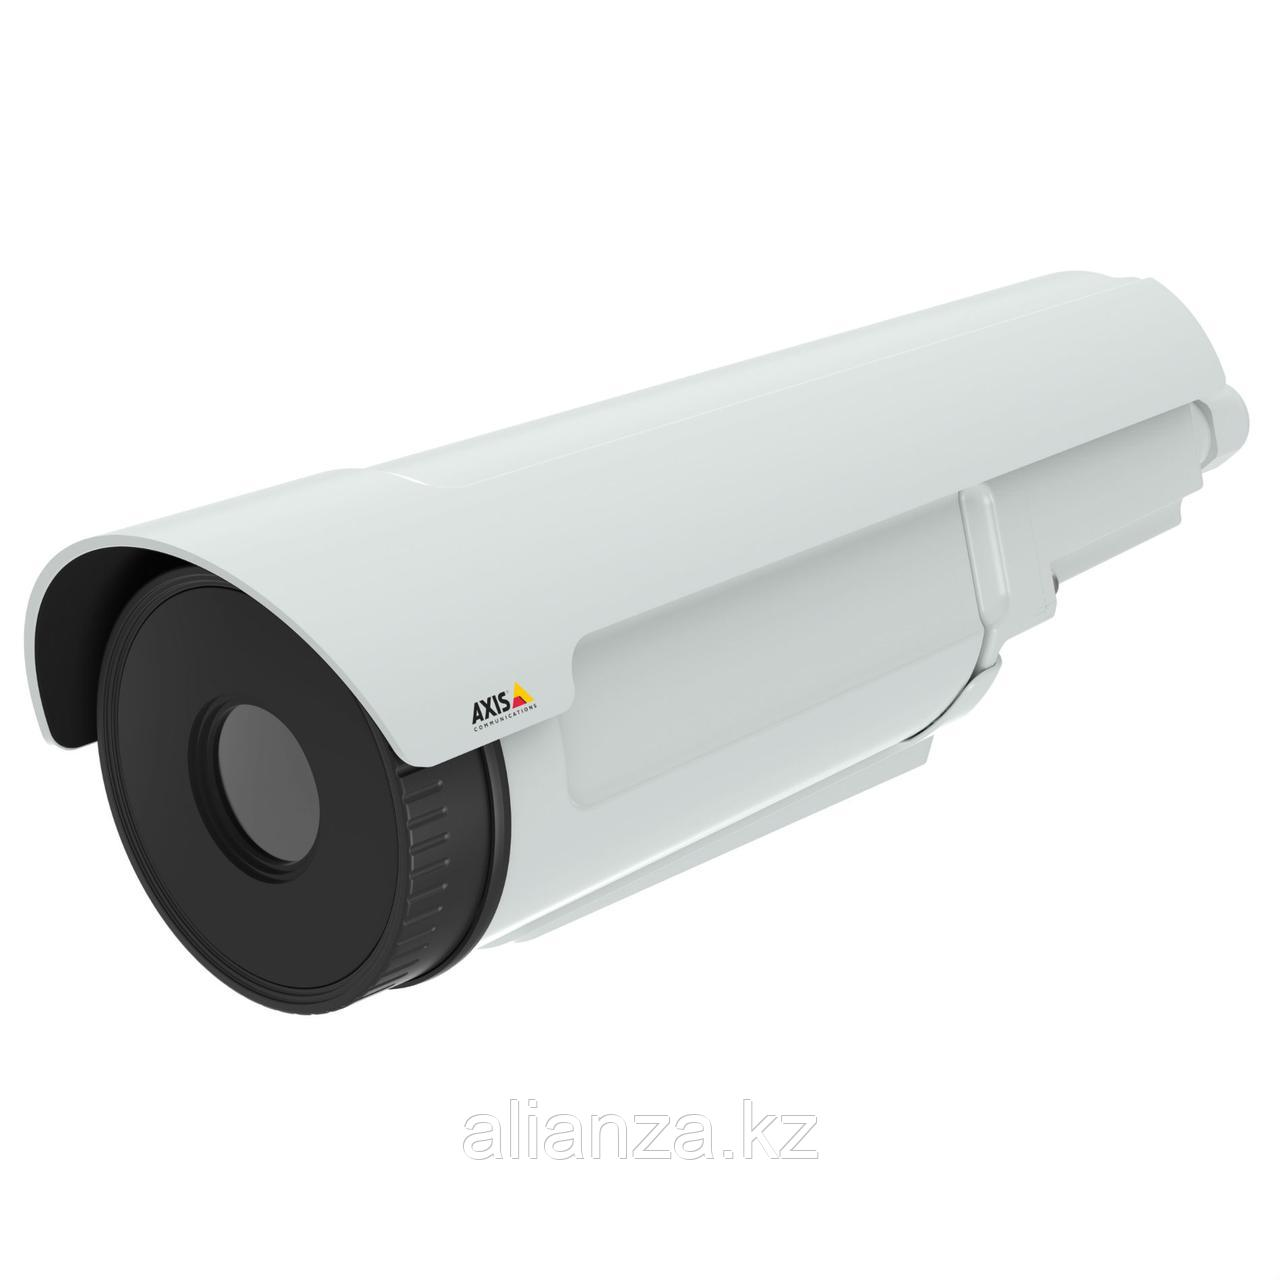 IP камера AXIS Q1931-E PT MOUNT 60MM